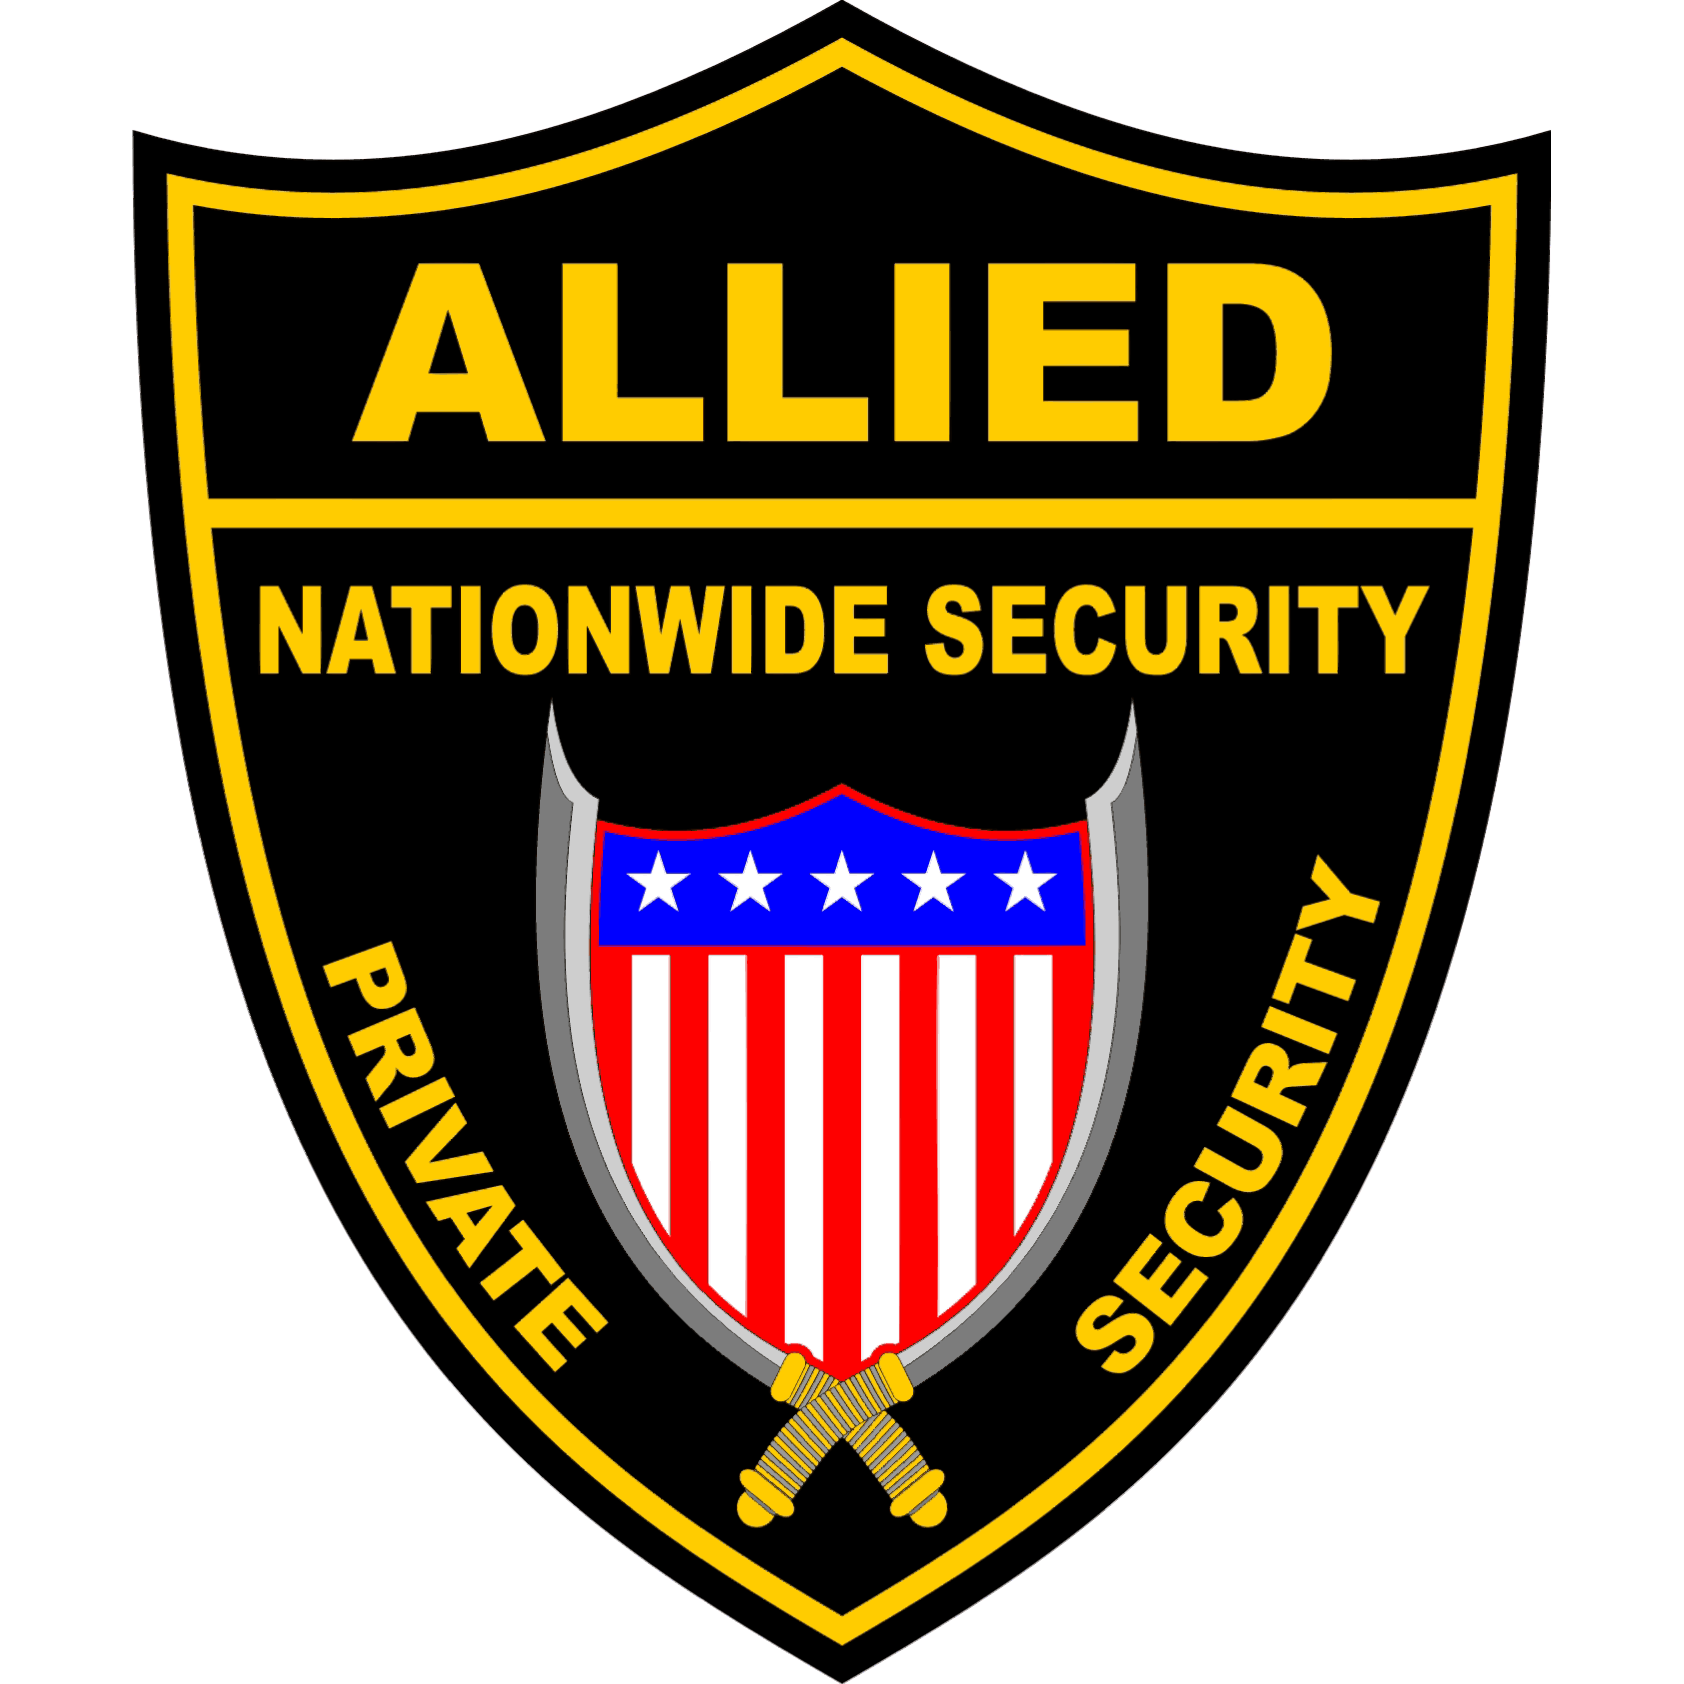 Allied Nationwide Security